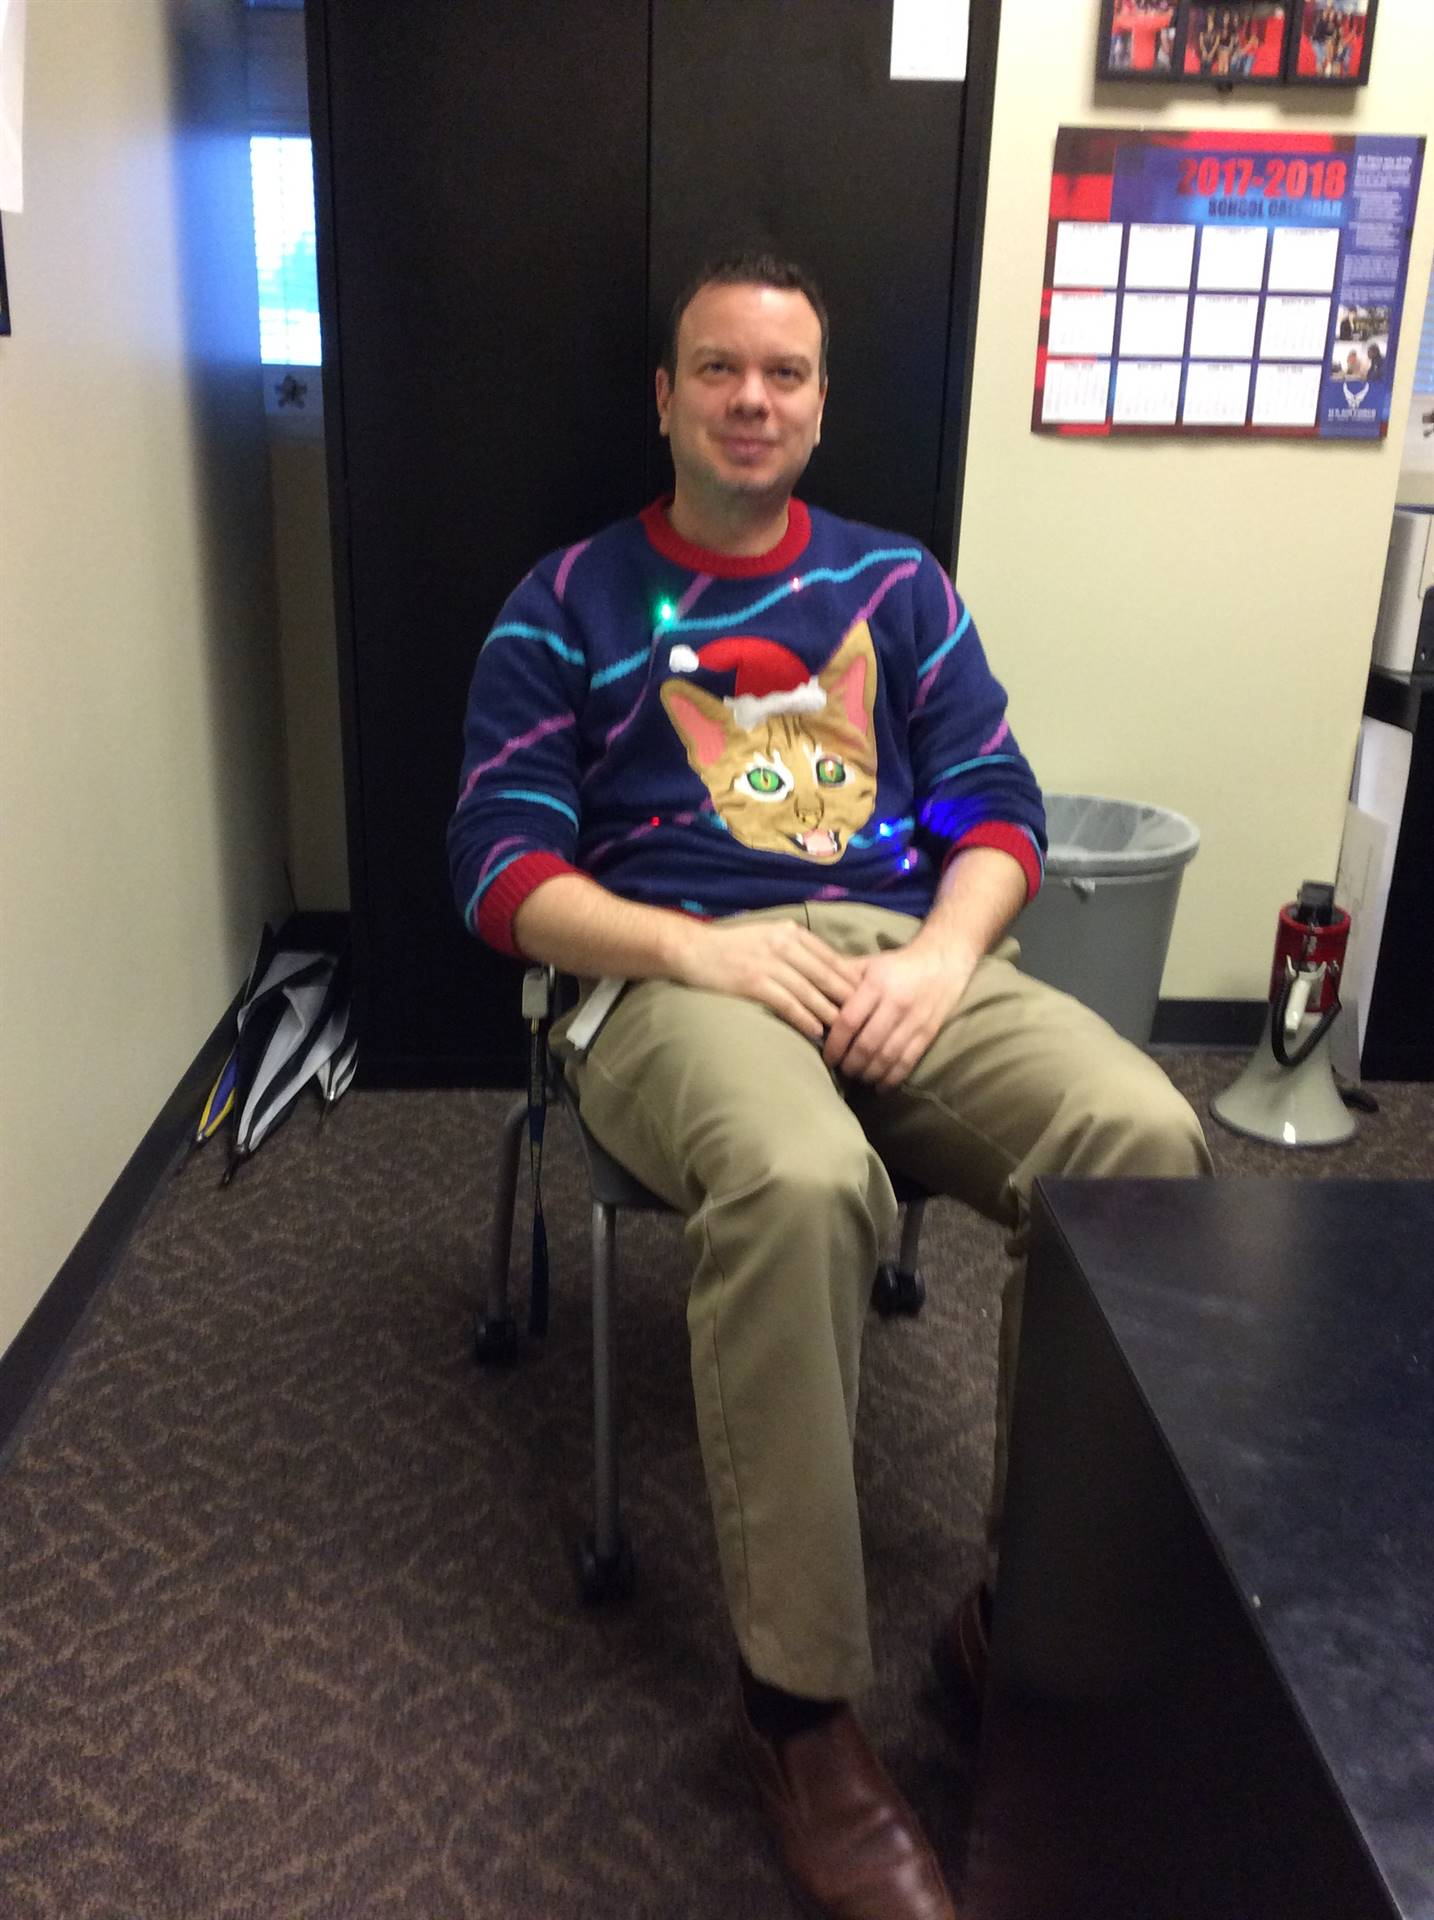 holiday sweater contest participant